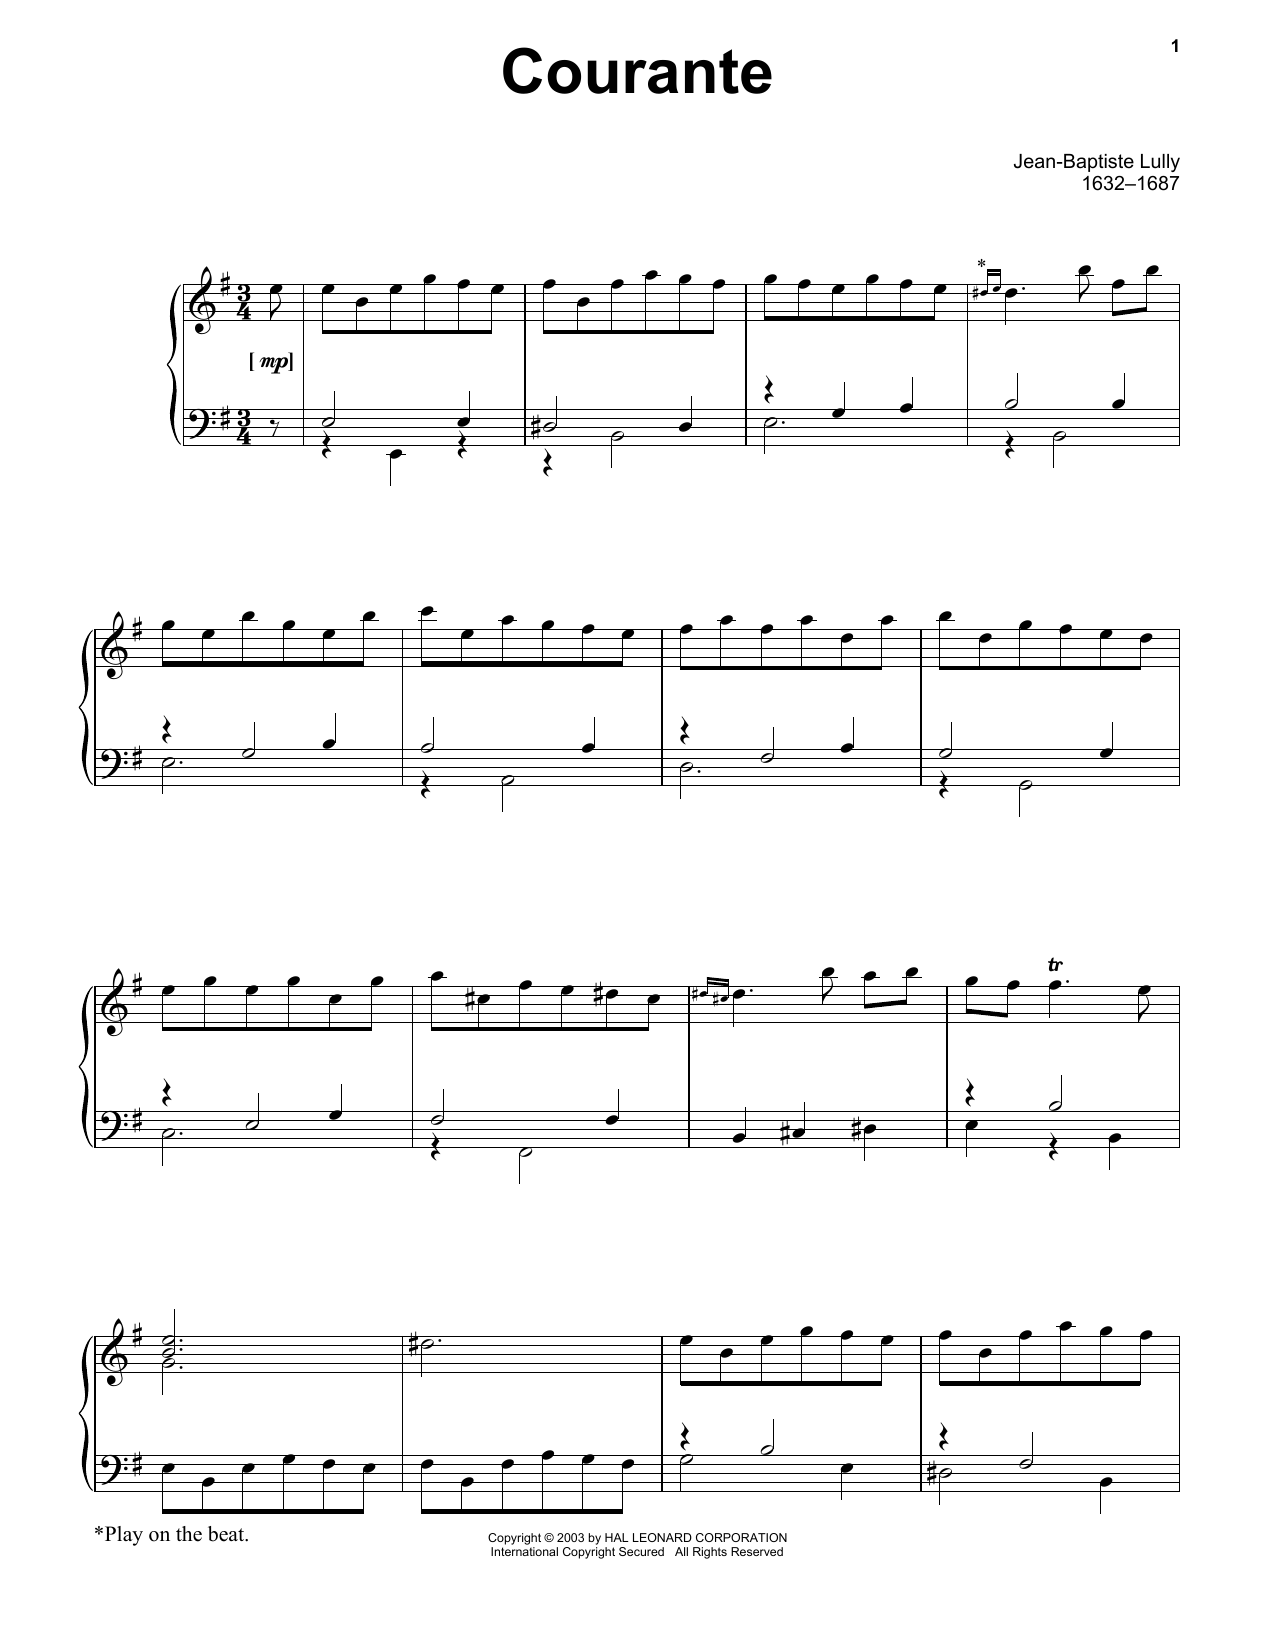 Jean-Baptiste Lully Courante sheet music notes and chords. Download Printable PDF.